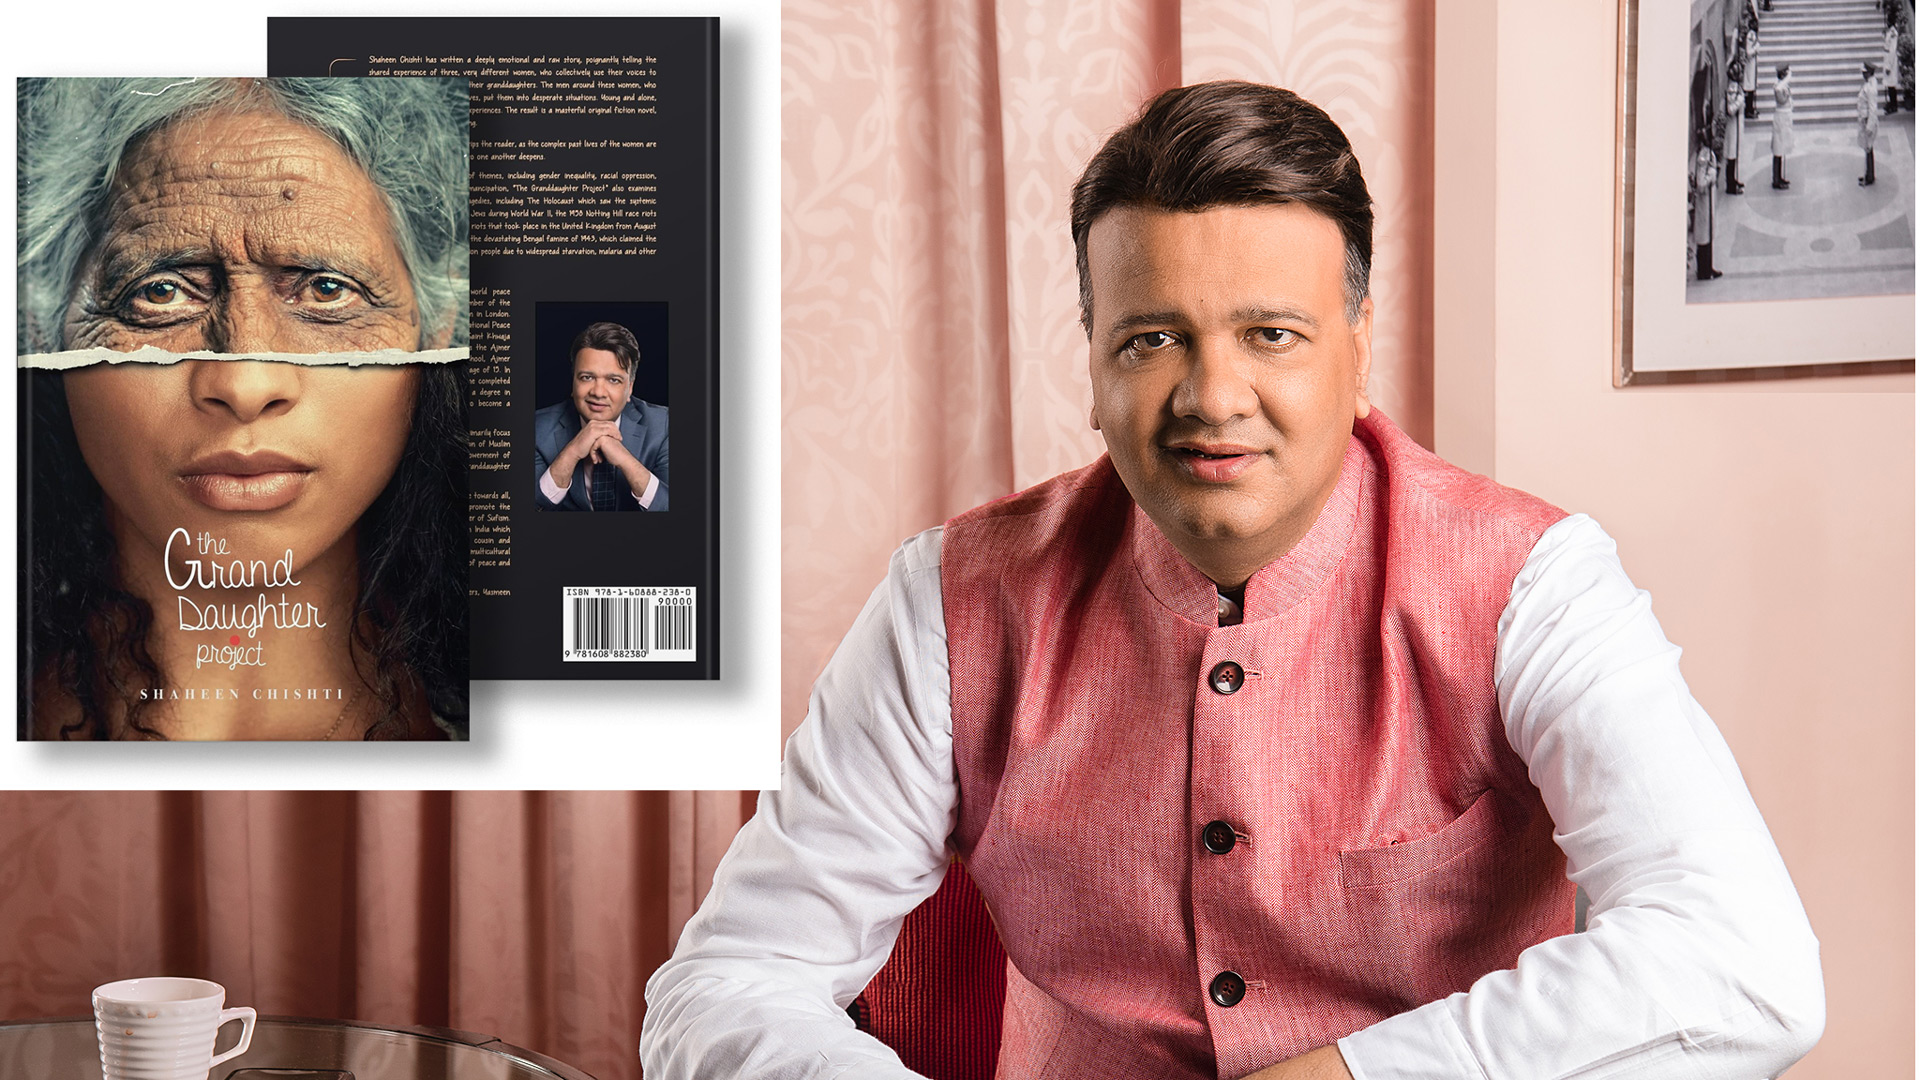 The Grand Daughter Project: British-Indian author Shaheen Chishti's debut novel